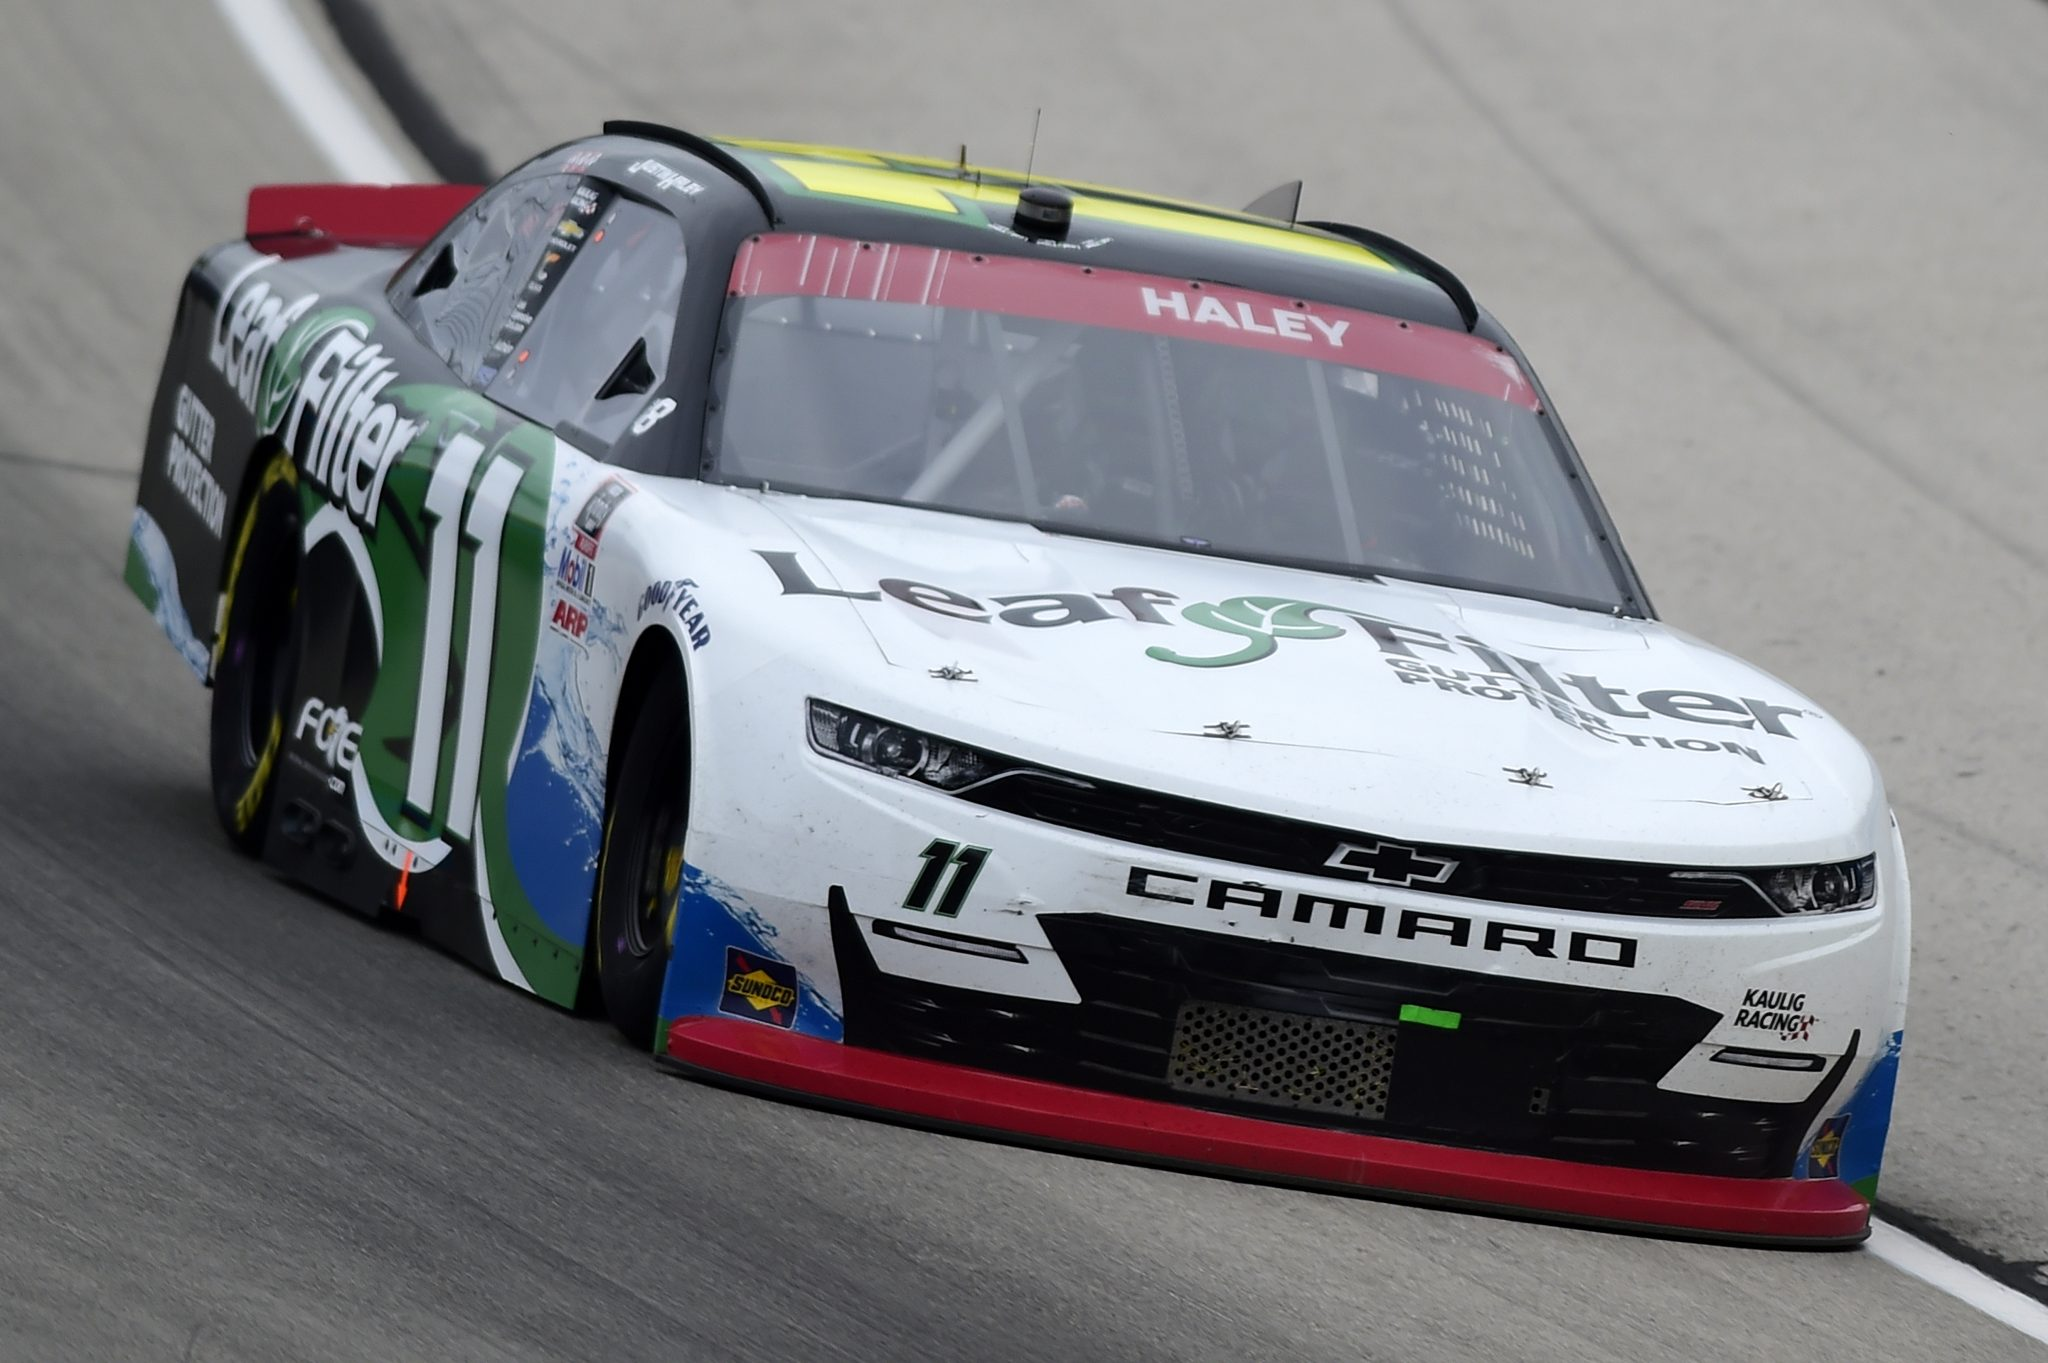 FORT WORTH, TEXAS - OCTOBER 24: Justin Haley, driver of the #11 LeafFilter Gutter Protection Chevrolet, drives during the NASCAR Xfinity Series O'Reilly Auto Parts 300 at Texas Motor Speedway on October 24, 2020 in Fort Worth, Texas. (Photo by Jared C. Tilton/Getty Images) | Getty Images